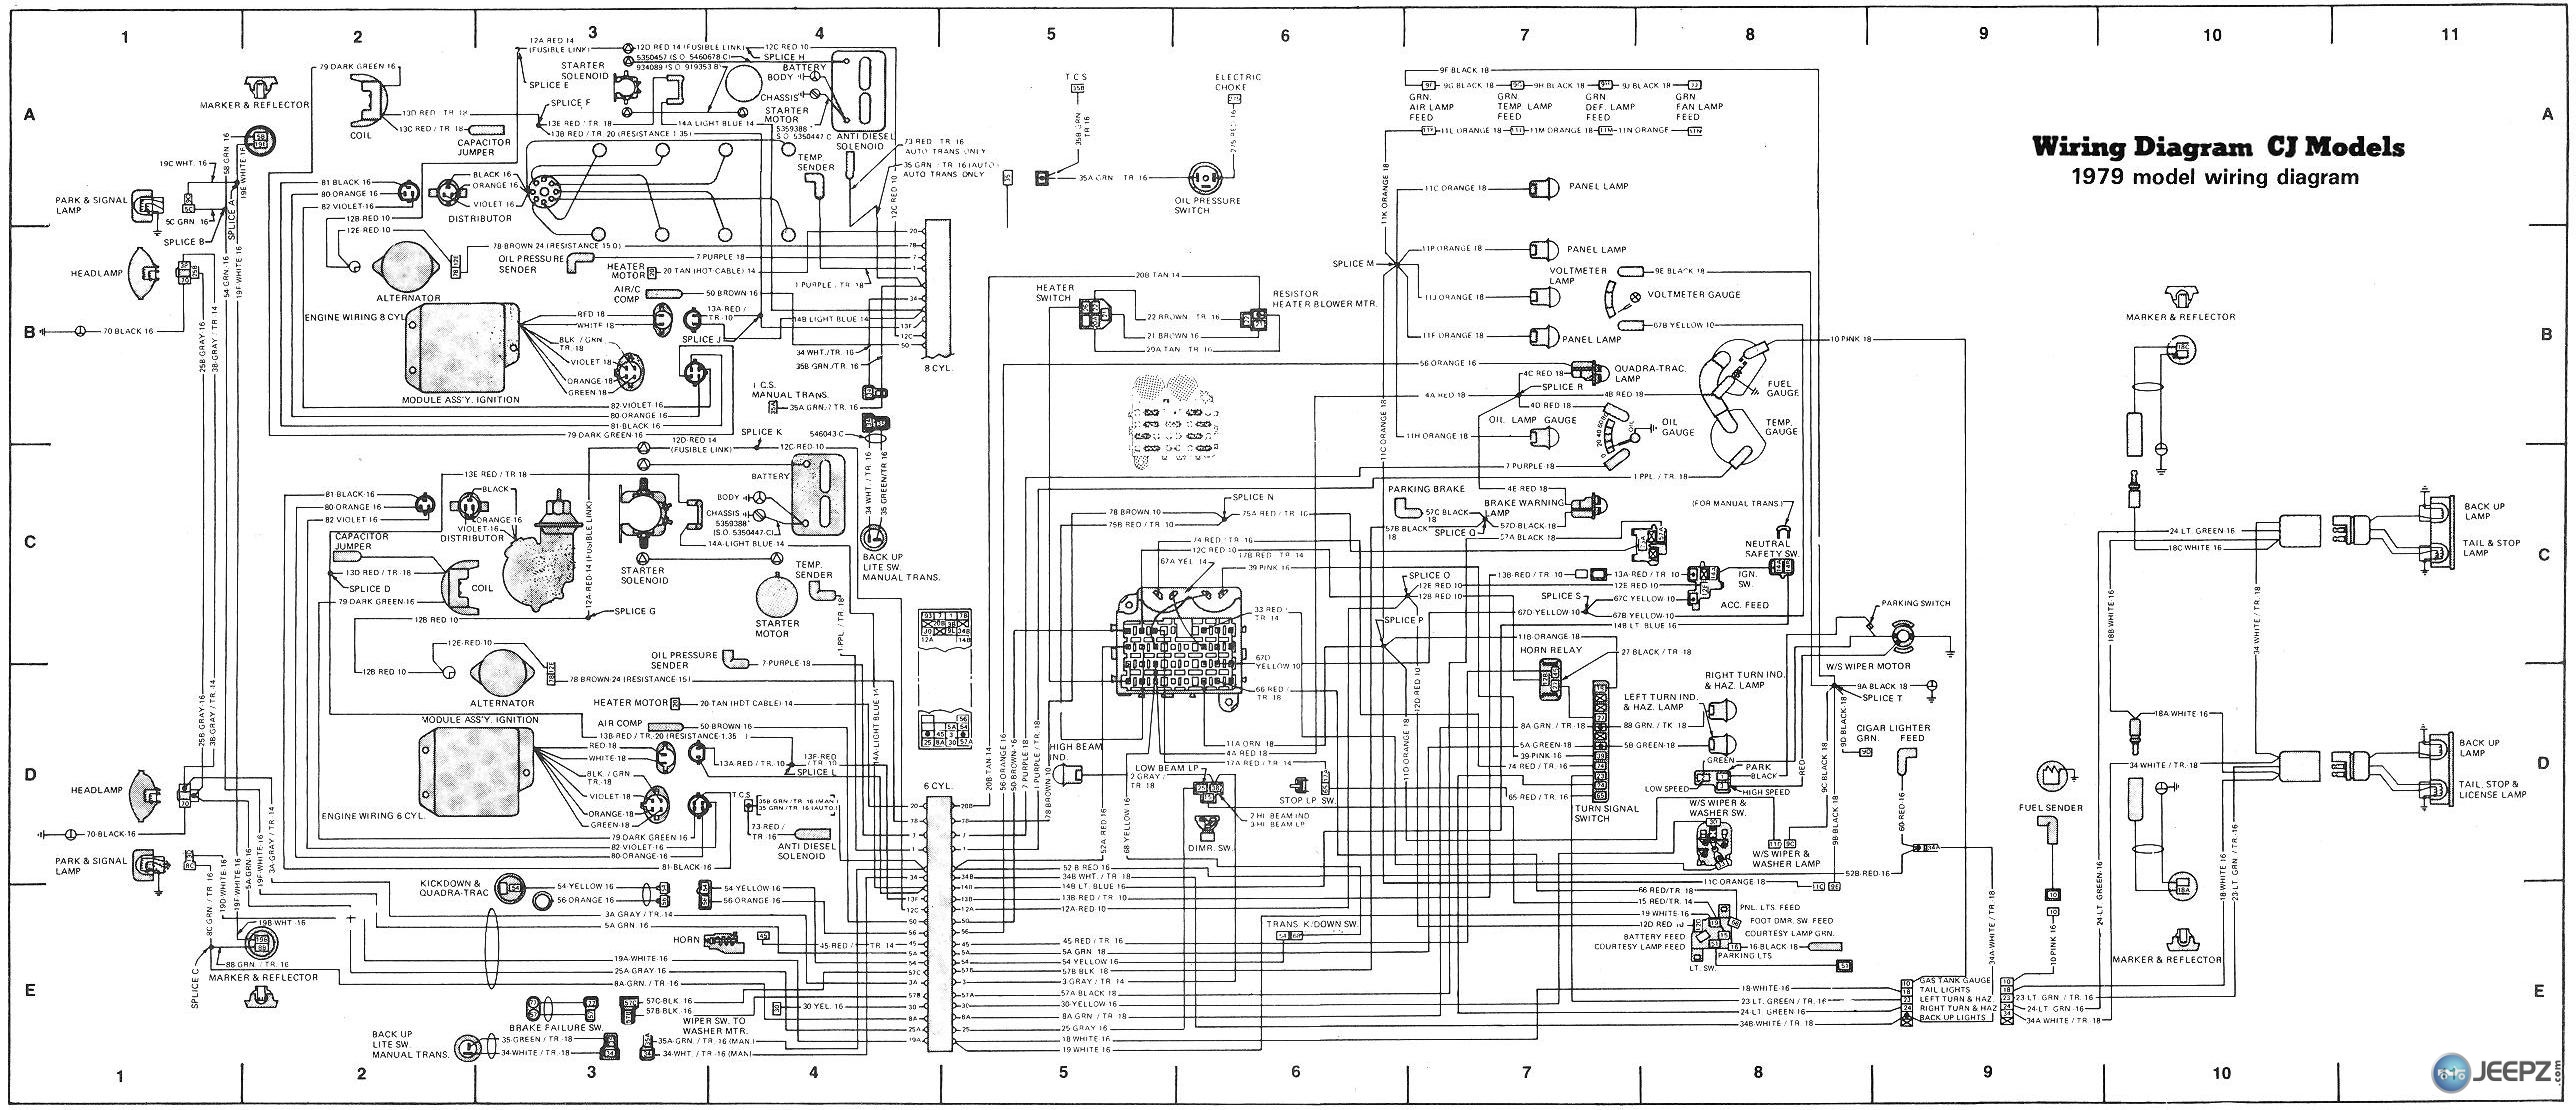 2748d1243285147-cj-headlight-wiring-colors-cj-wiring-diagram-1979 Jeep Jk Headlight Wiring Schematic on fj cruiser headlight wiring, jeep jk starting problems, jeep xj headlight wiring, jeep jk engine rebuild, jeep jk alternator, jeep commander headlight wiring, jeep jk battery, jeep jk fuse box, grand cherokee headlight wiring, jeep jk rear brakes, land rover headlight wiring, jeep jk fuel pump, jeep jk gauge, jeep jk lights, international headlight wiring,